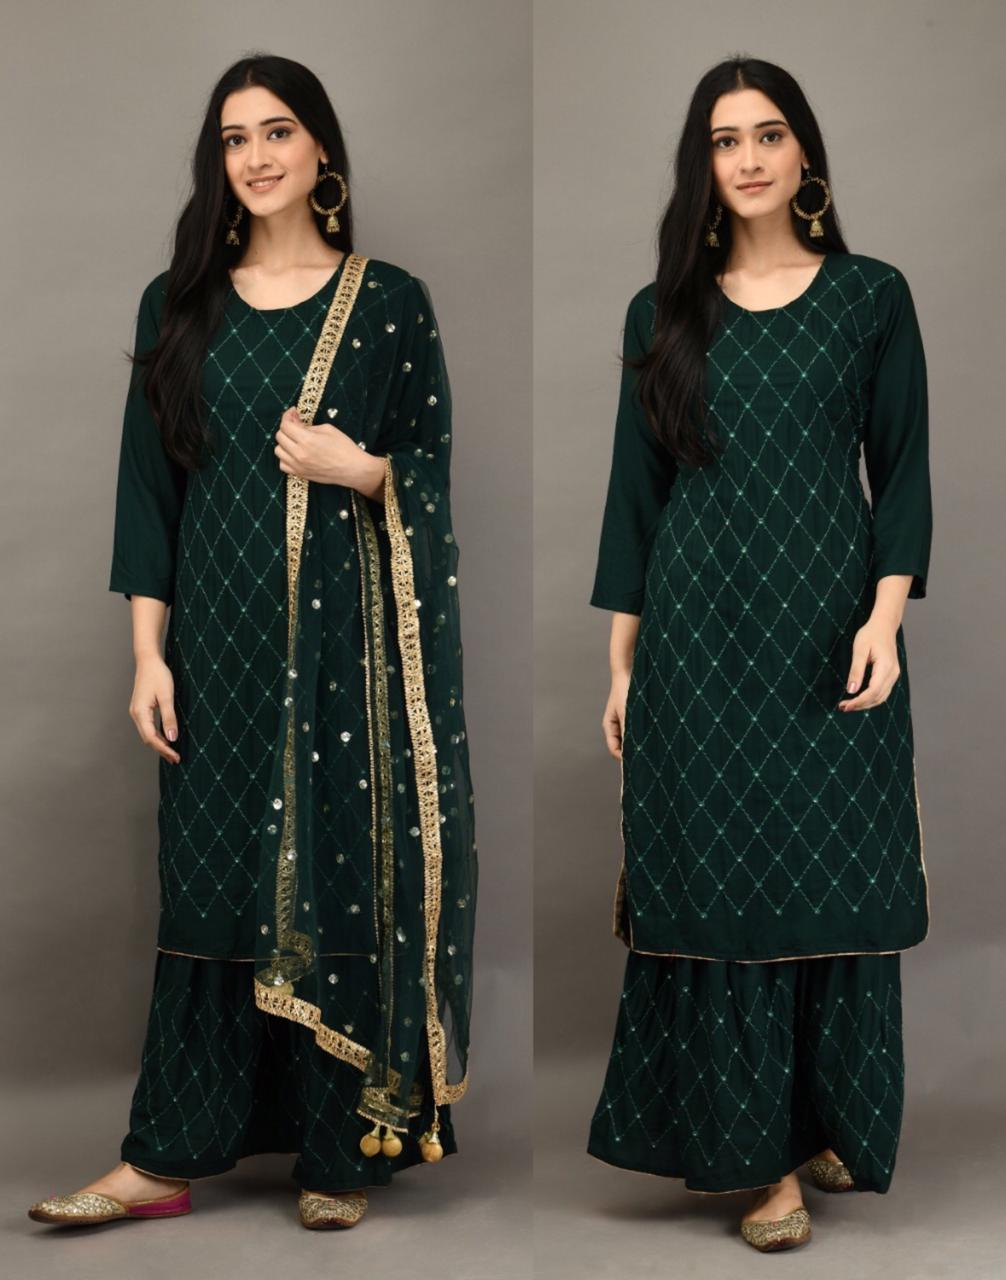 Green 3 Pc Kurti Pallazo with Embroidery work and Sequins work Dupatta